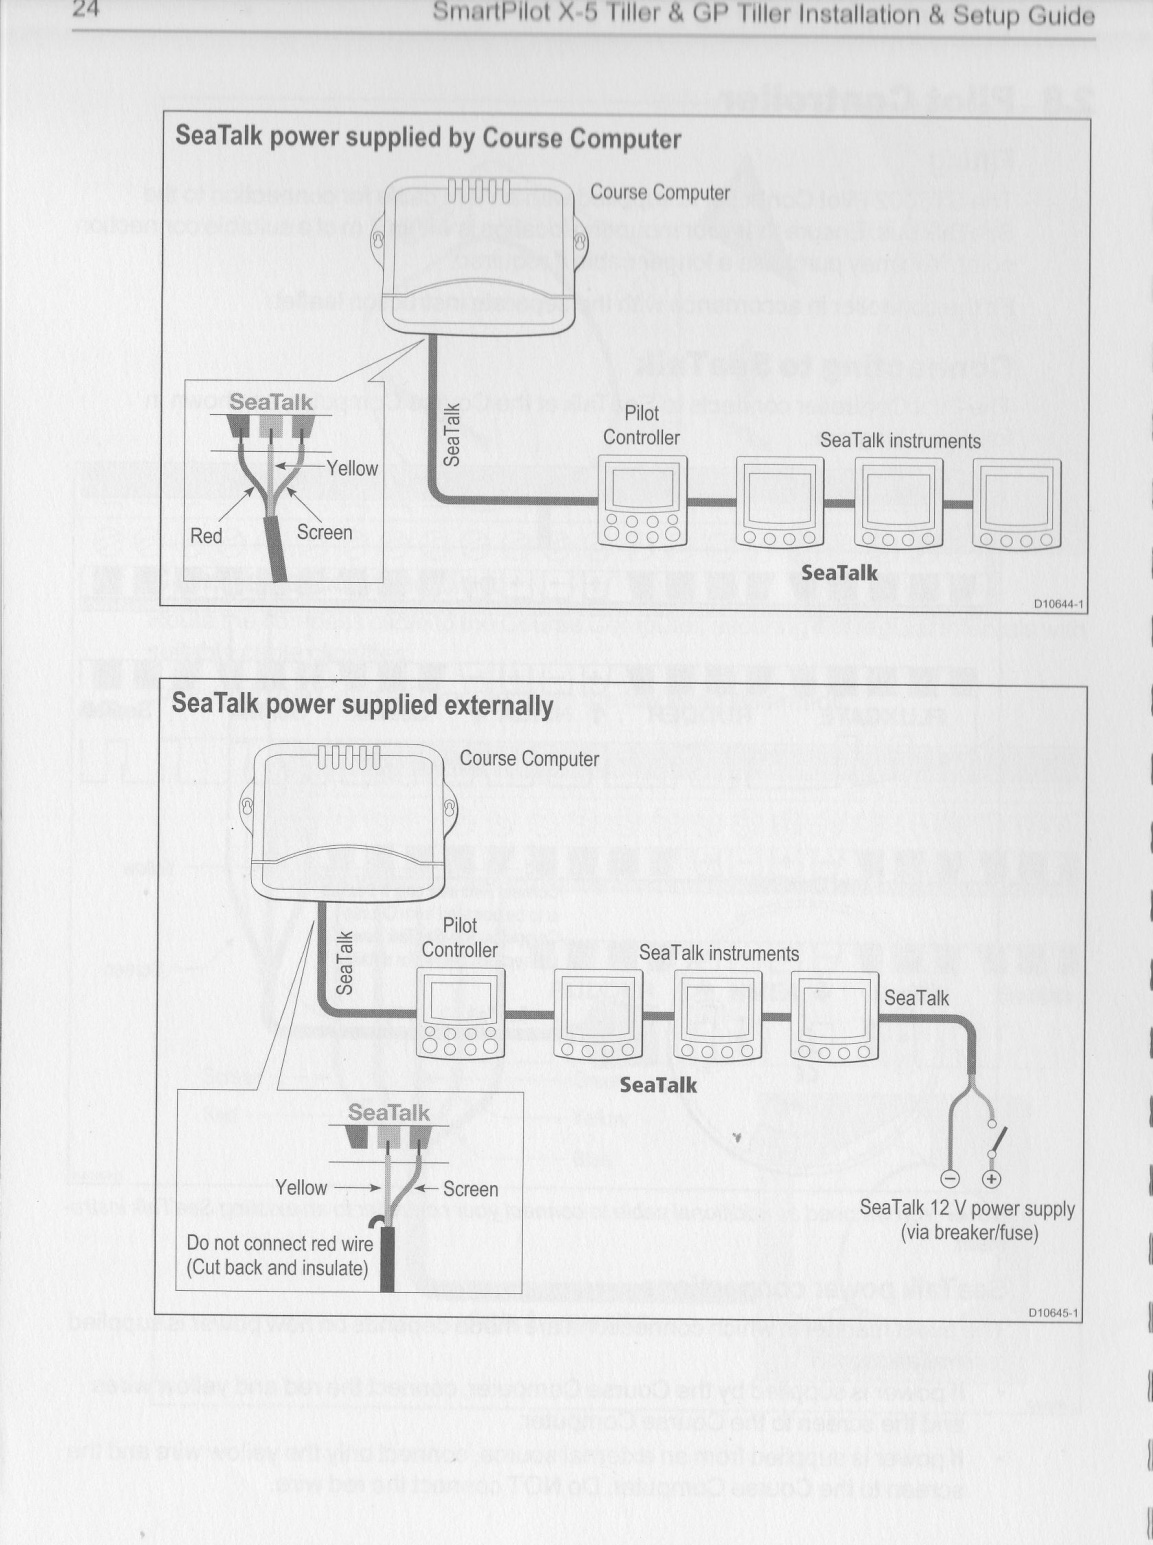 Connecting Raymarine E7d To Autopilot Cruisers Sailing Forums Nmea 0183 Cable Wiring Diagram Click Image For Larger Version Name Seatalk Views 1490 Size 4033